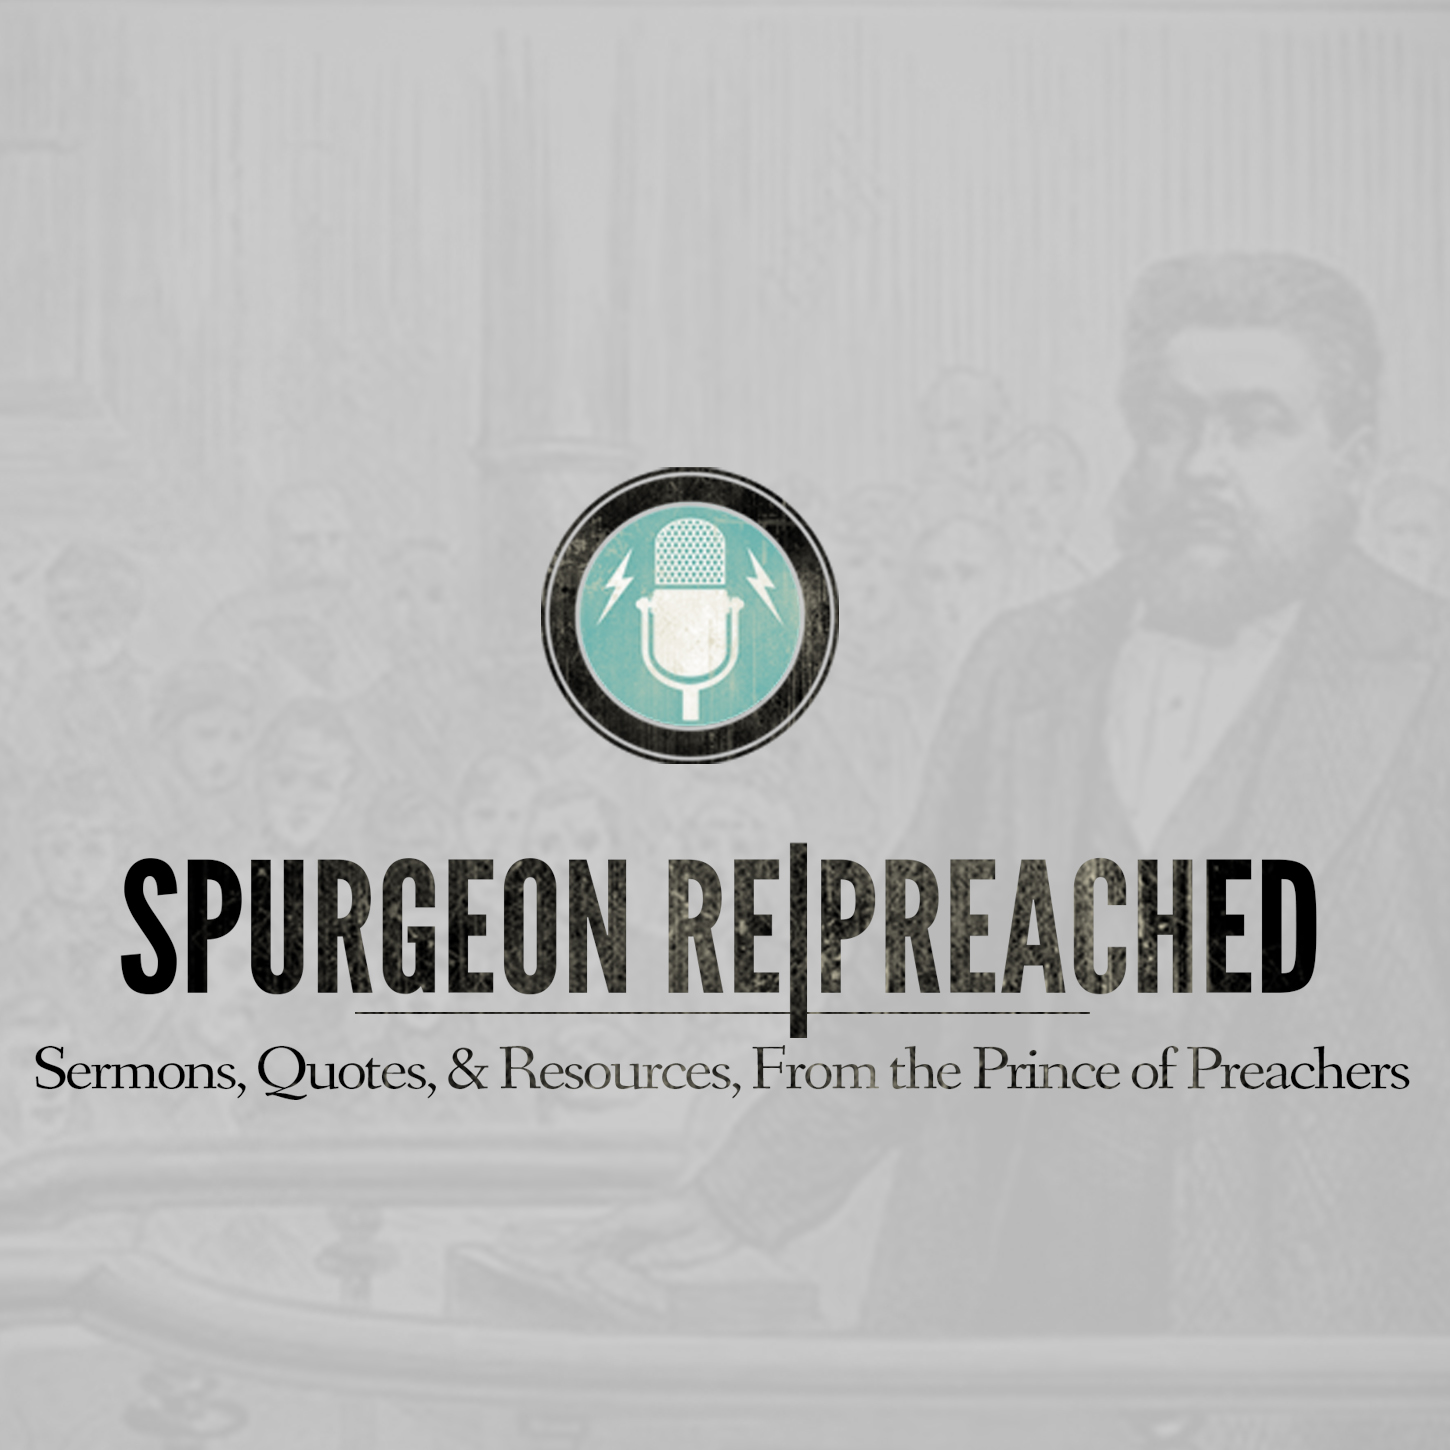 Spurgeon RePreached – Spurgeon RePreached